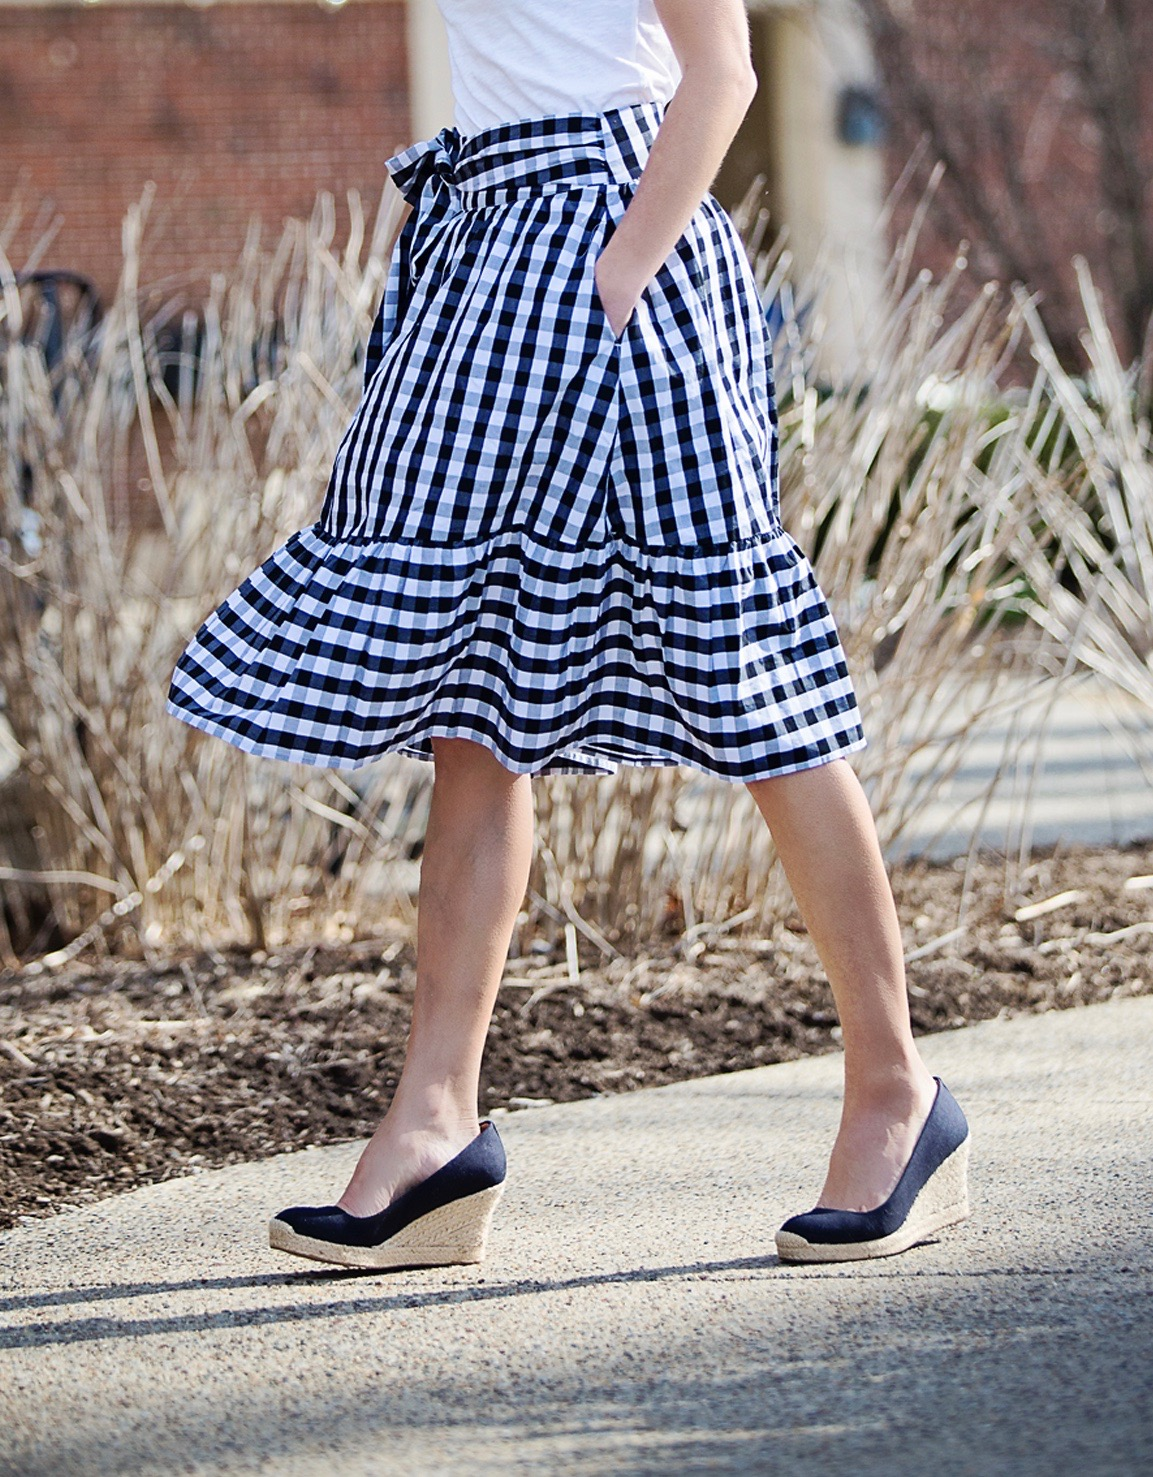 The Motherchic wearing gingham skirt and espadrille wedges from J.Crew Factory